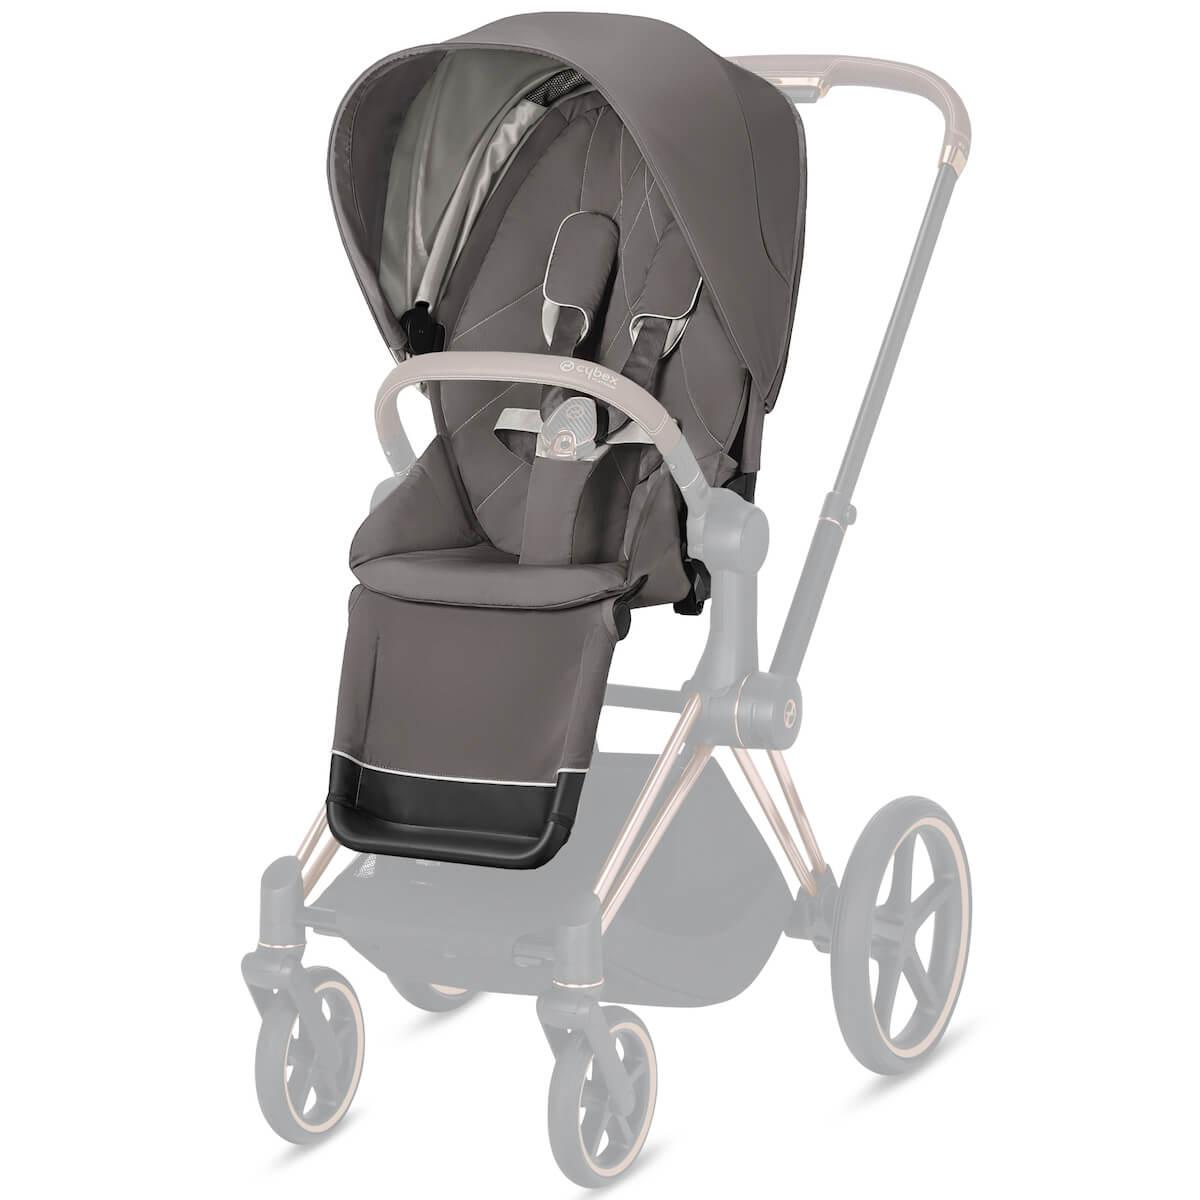 Assise-habillage poussette PRIAM Cybex Soho grey-mid grey